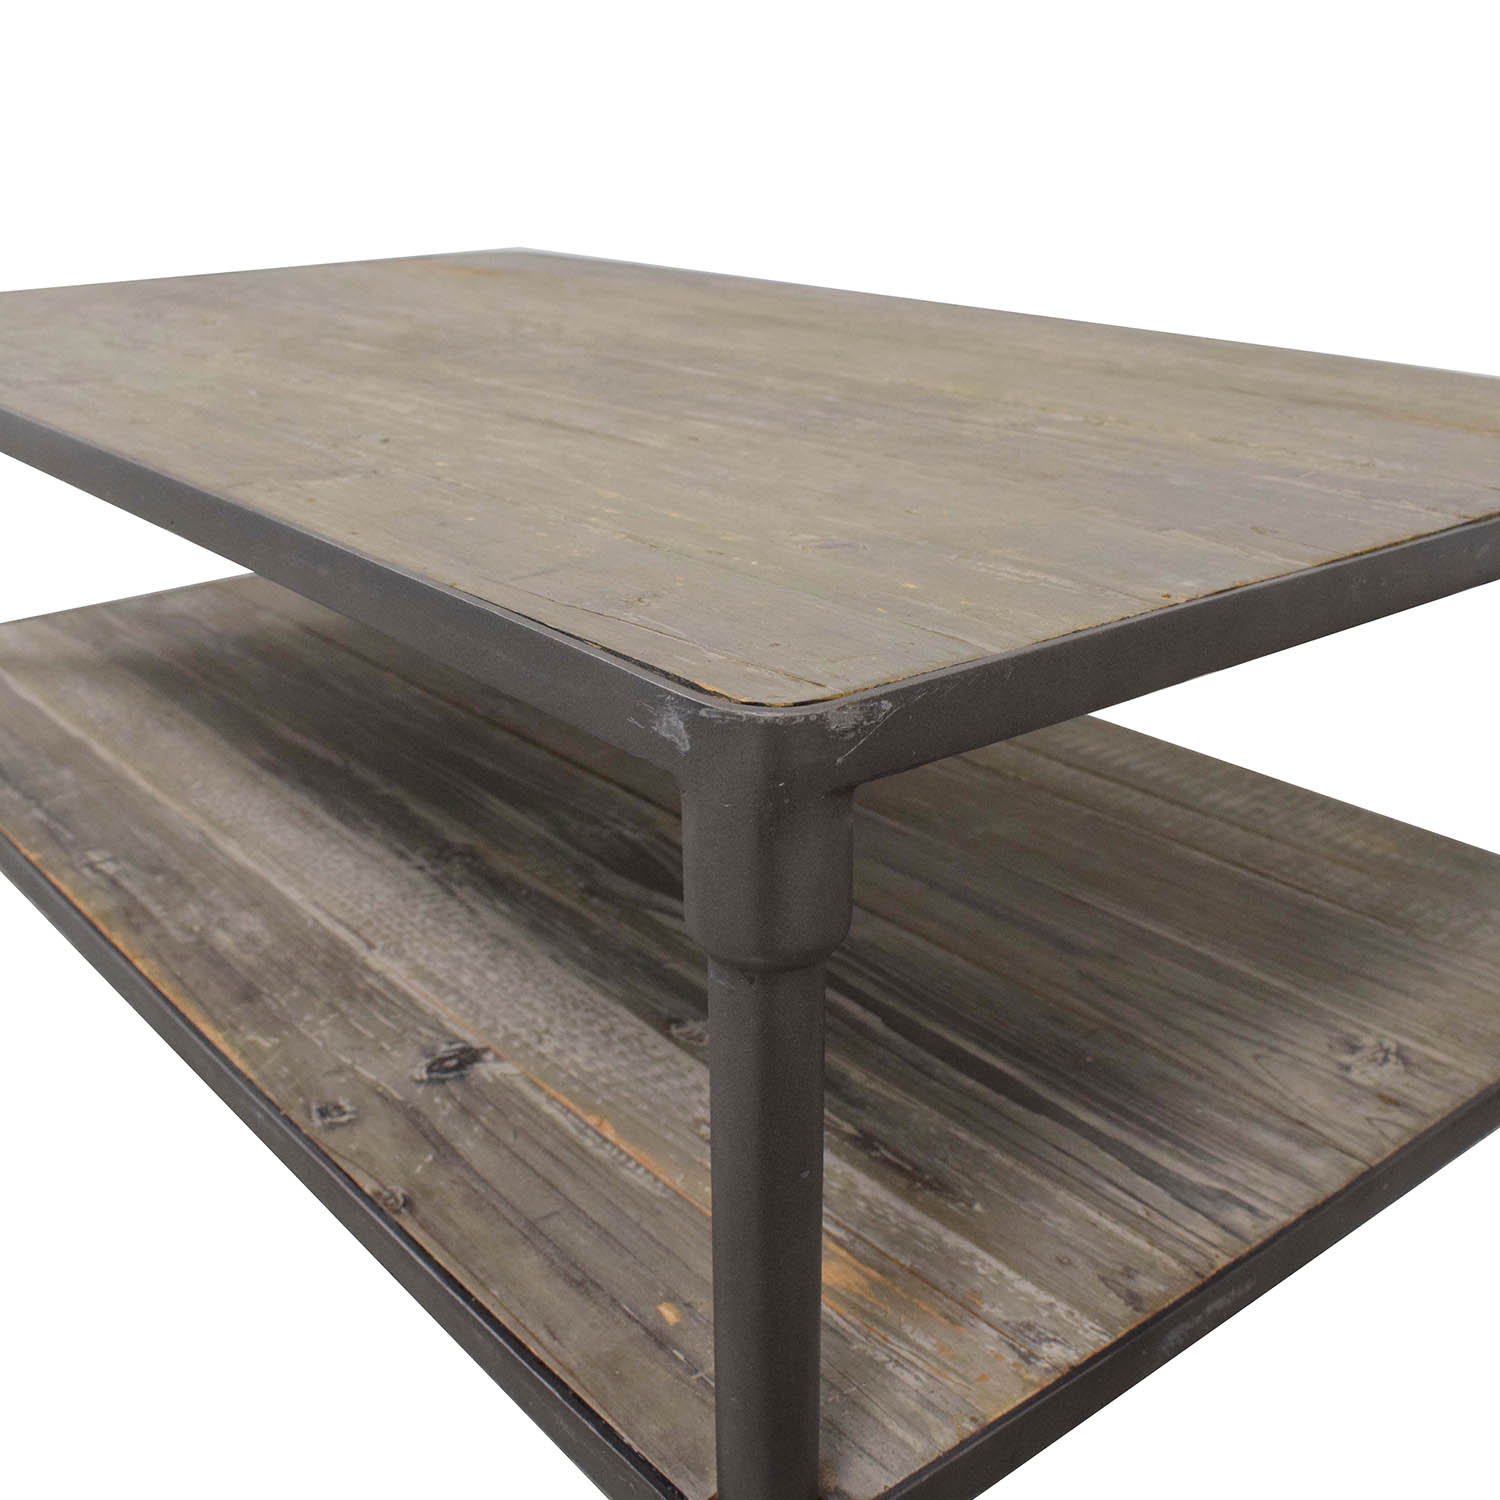 ABC Carpet & Home ABC Carpet & Home Industrial Rolling Two Tier Coffee Table used